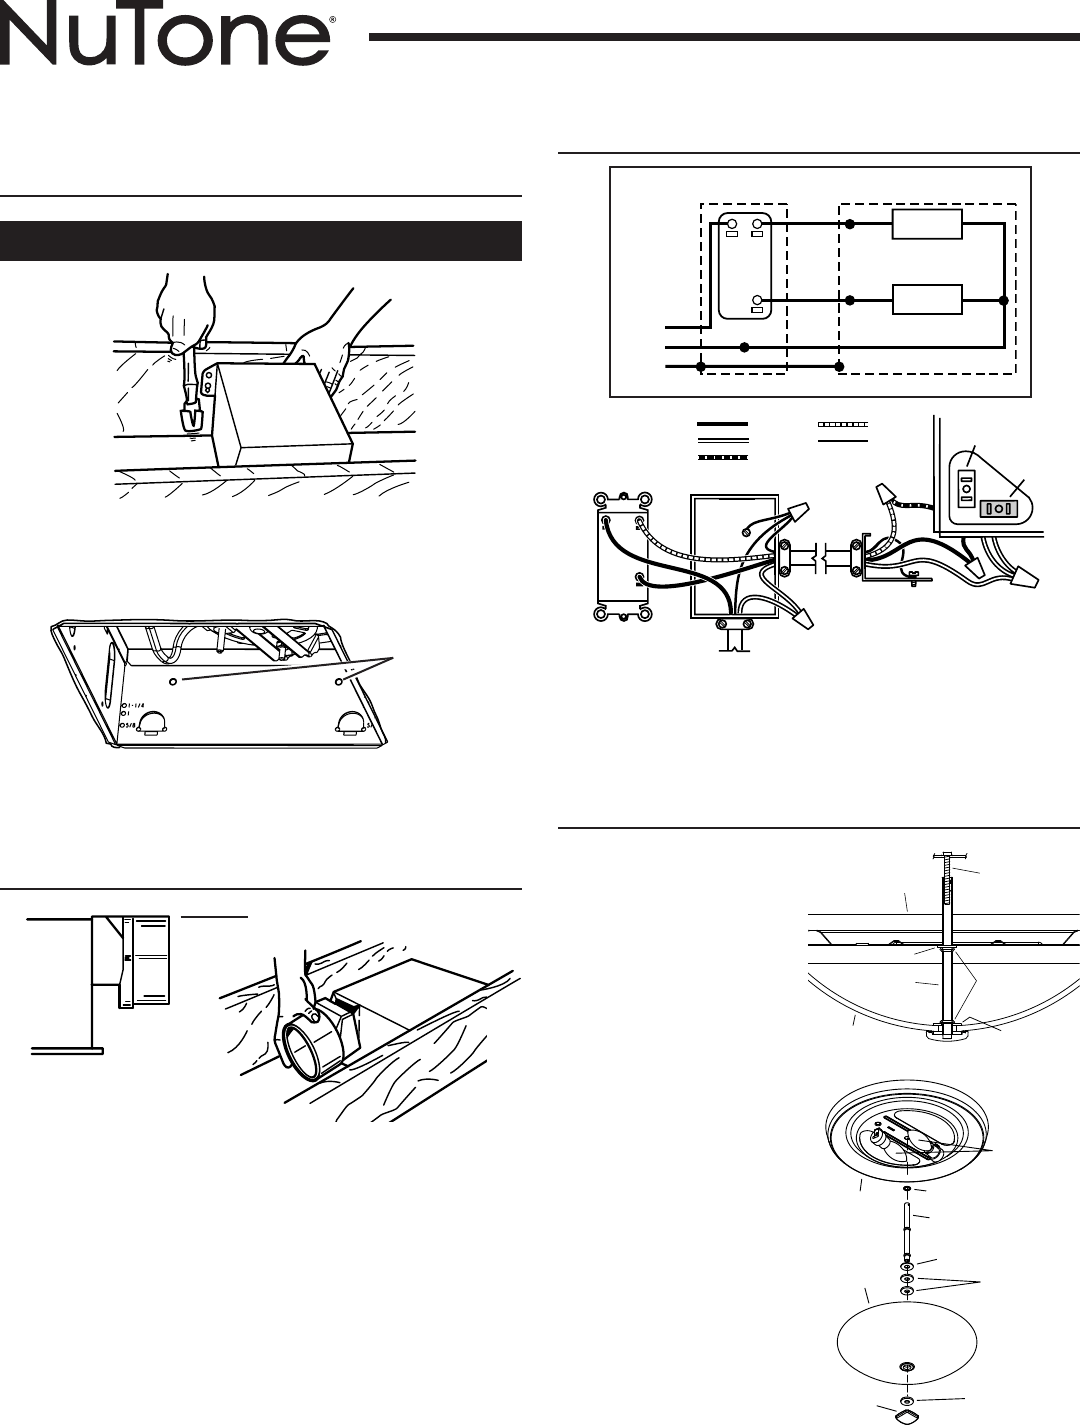 bathroom fan wiring diagram 2004 ford f150 car stereo page 3 of nutone ventilation hood 768chnt user guide